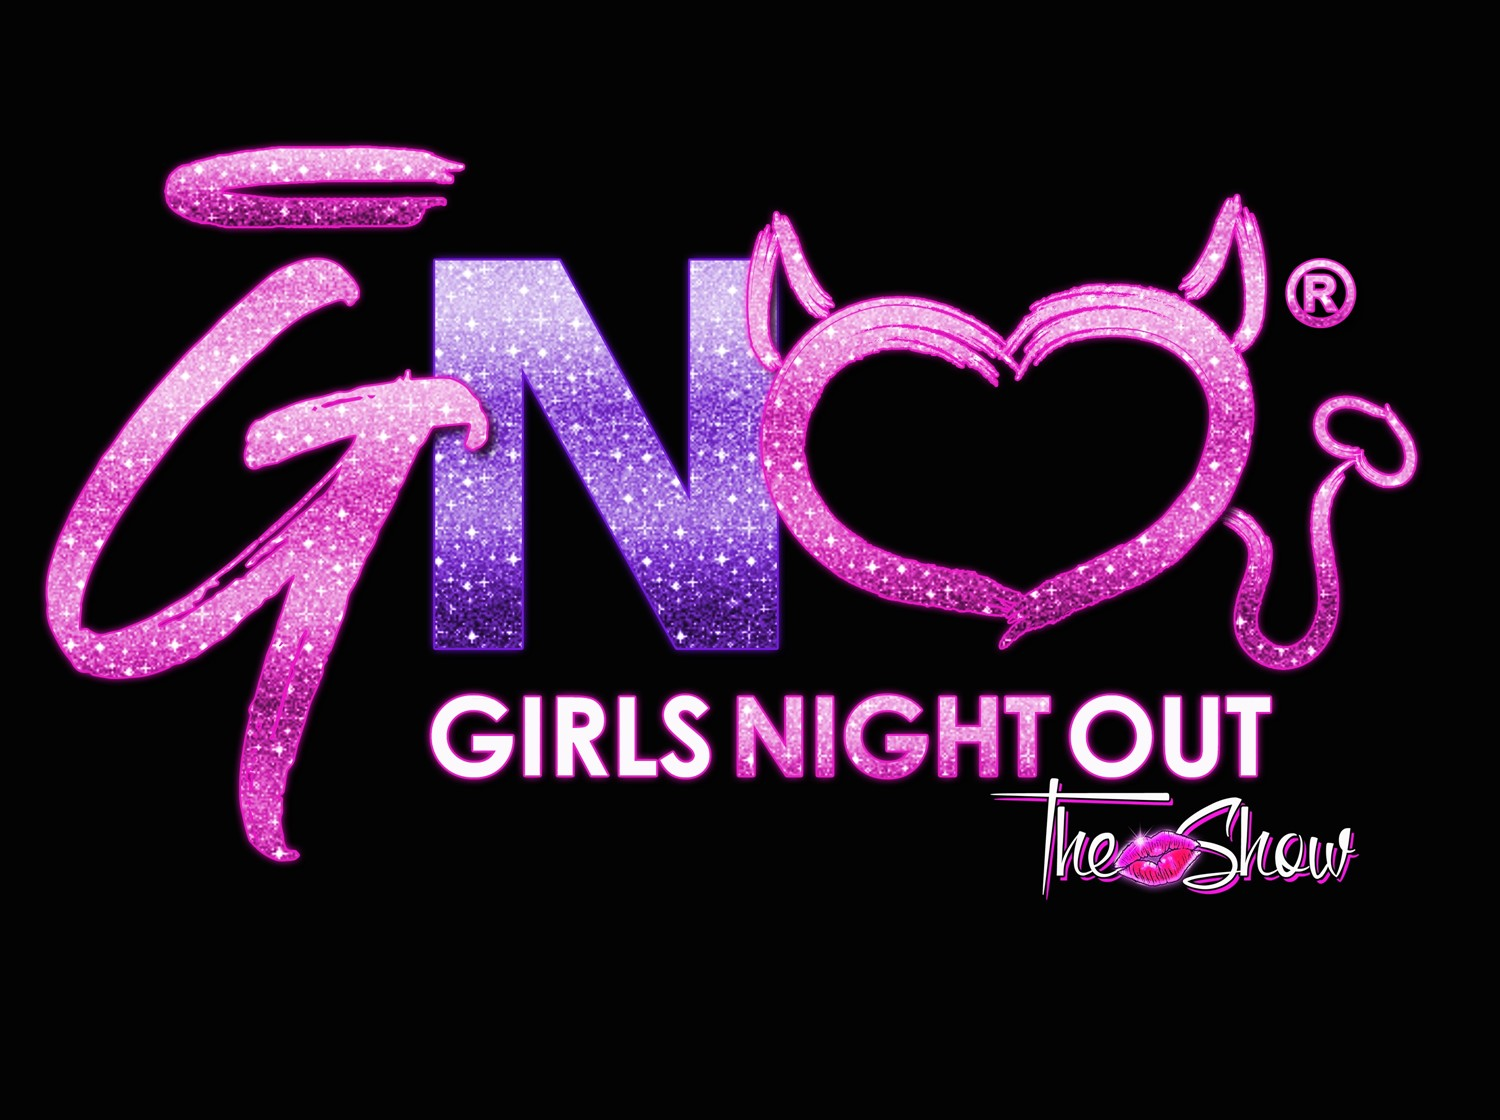 Club Bahia (21+) Los Angeles, CA on Jul 26, 19:30@Club Bahia - Buy tickets and Get information on Girls Night Out the Show tickets.girlsnightouttheshow.com